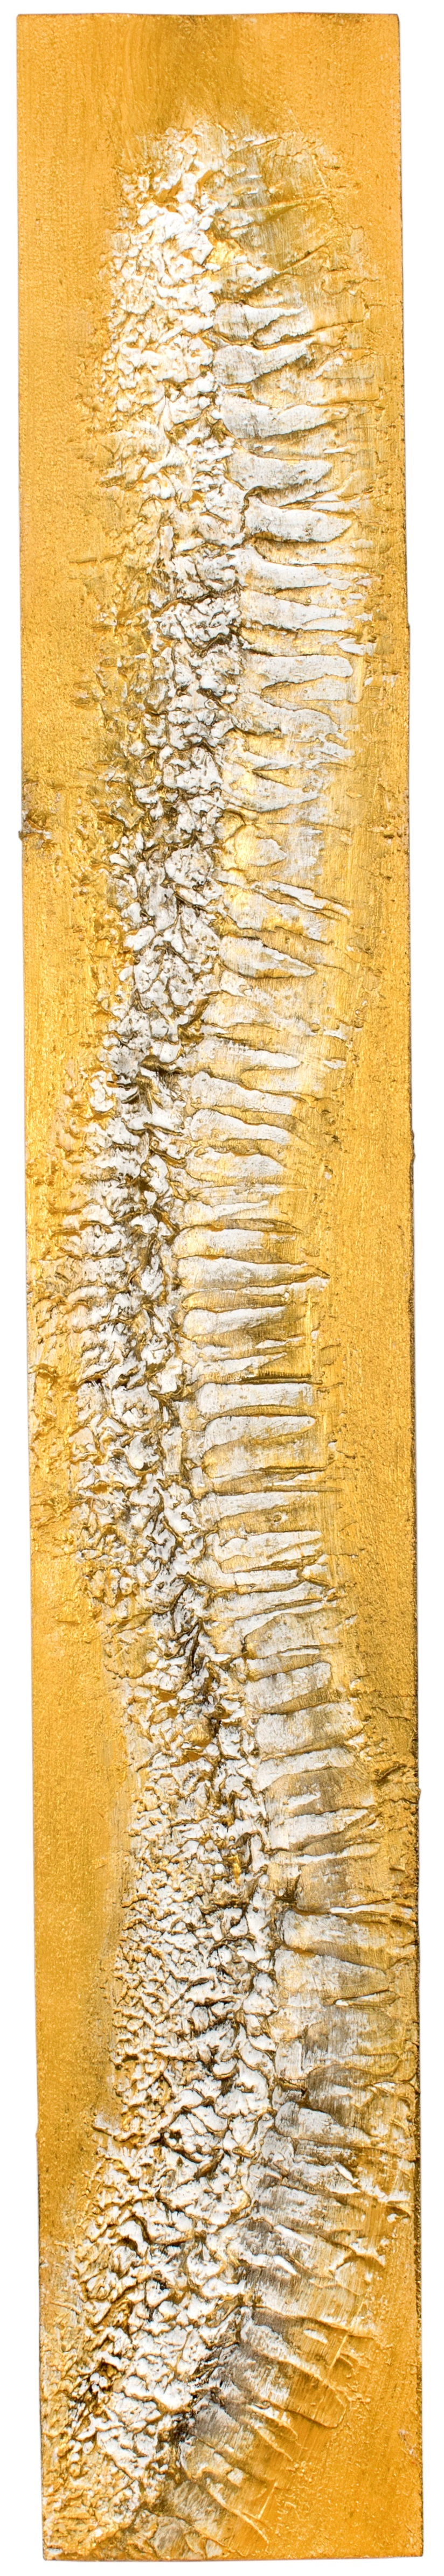 VERTEBRAE#6 -Plaster and acrylic on rough spruce board, 18x120cm - UNAVAILABLE